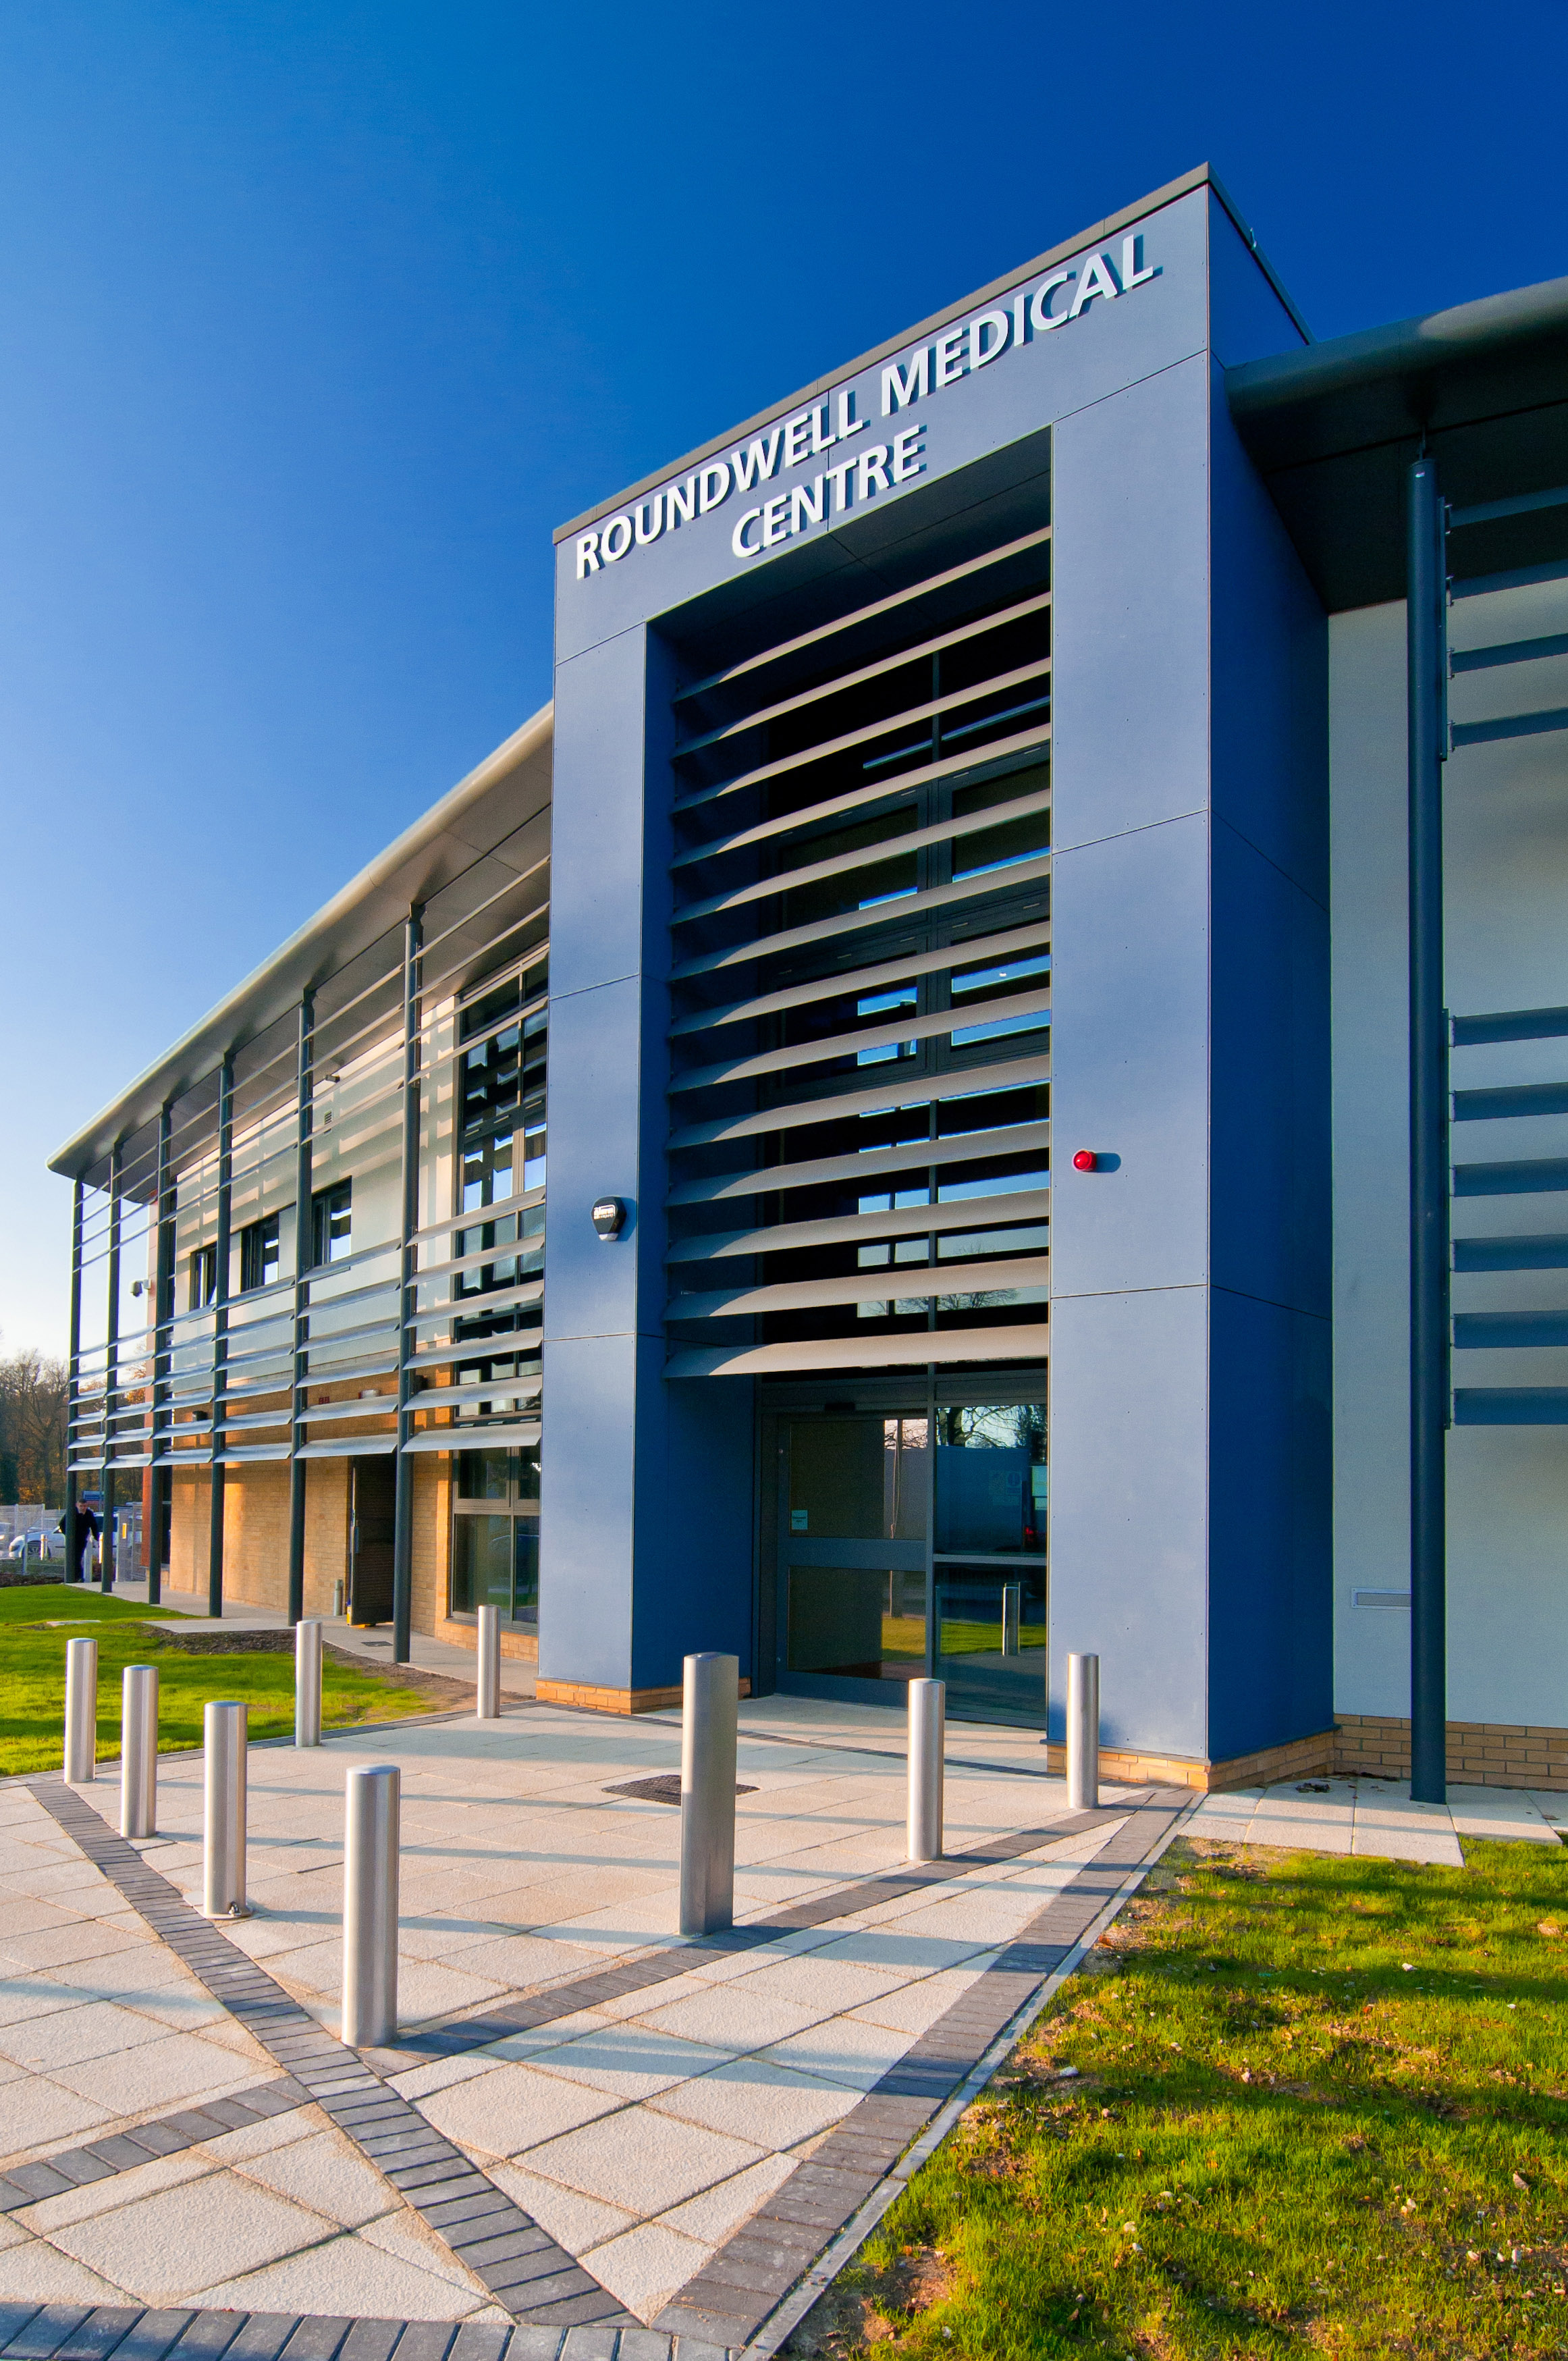 Roundwell Medical Centre, Norwich